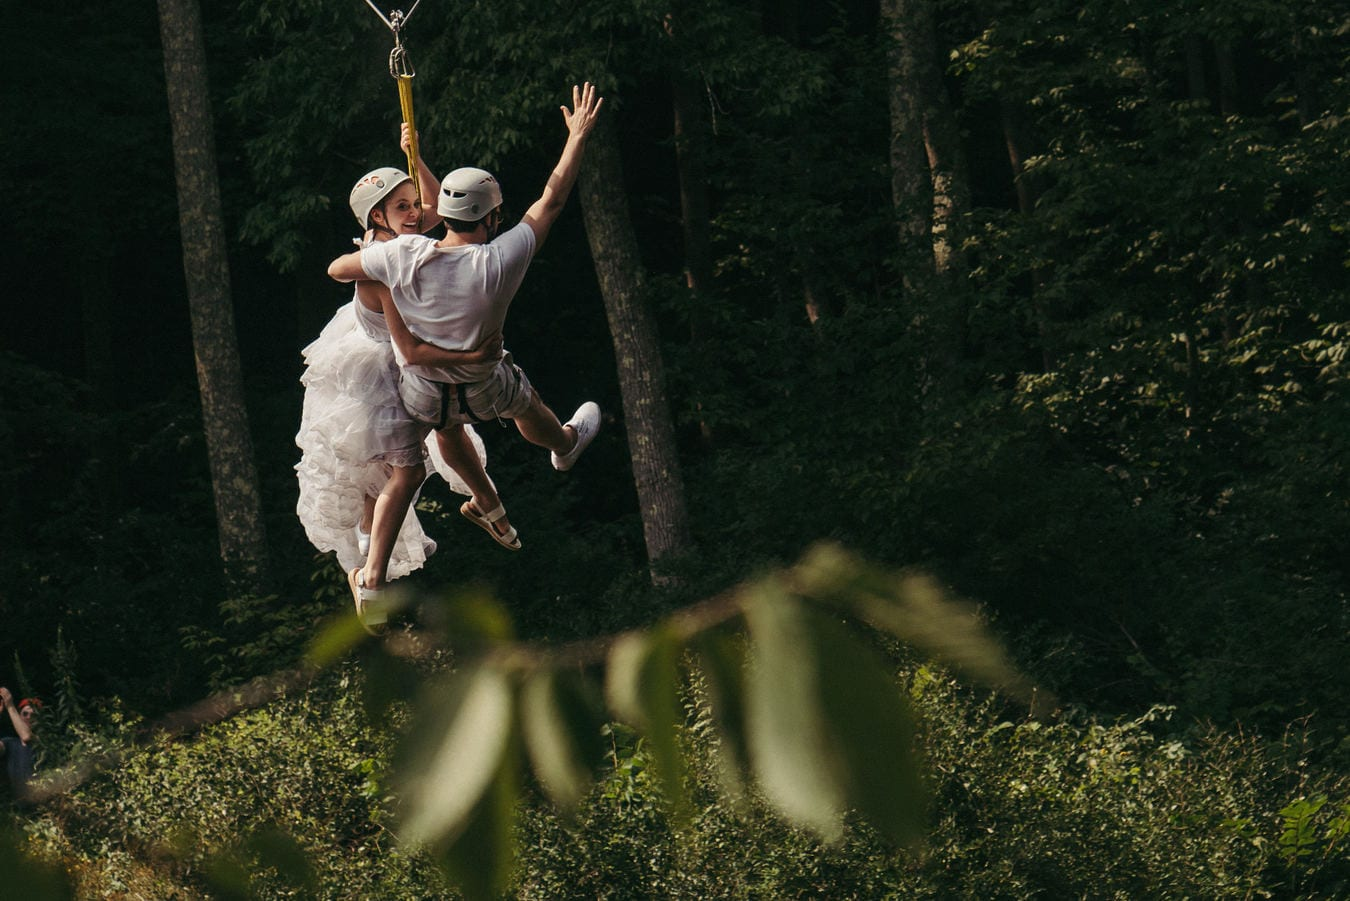 Bride and groom ride zip line through Catskill forest after wedding ceremony.